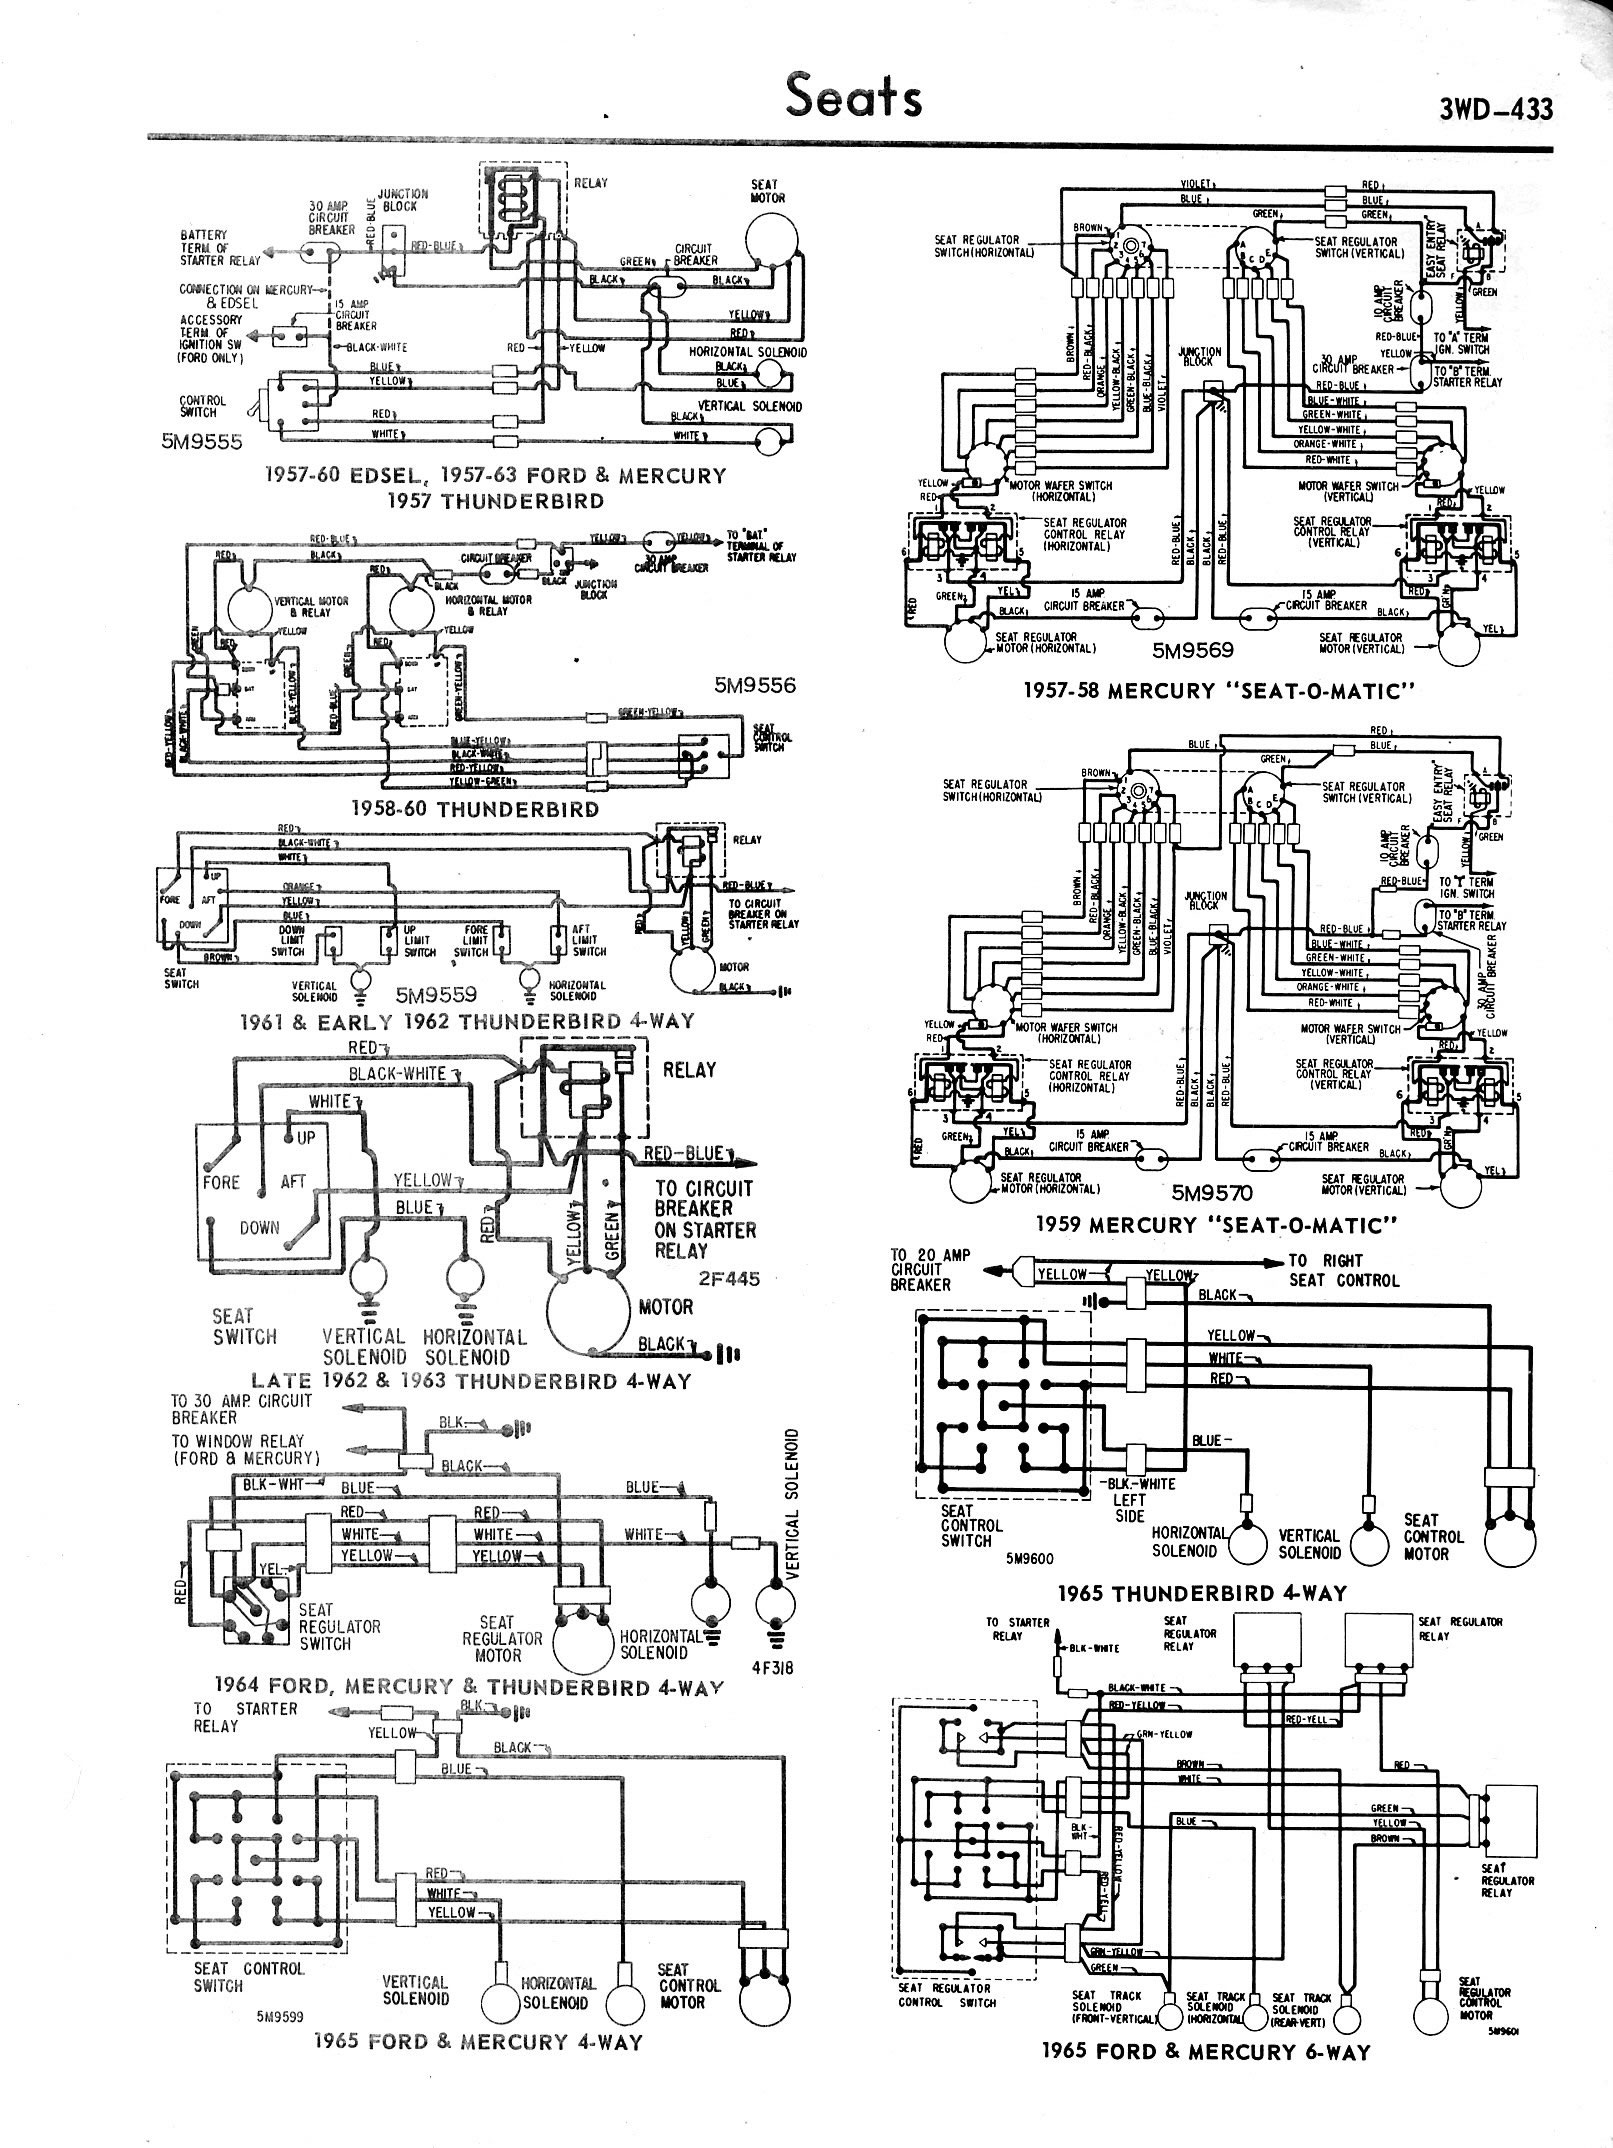 ford diagrams  57 64 mercury (57 59 seat o matic), 57 60 edsel, 57 64 thunderbird (4 way \u0026 6 way)